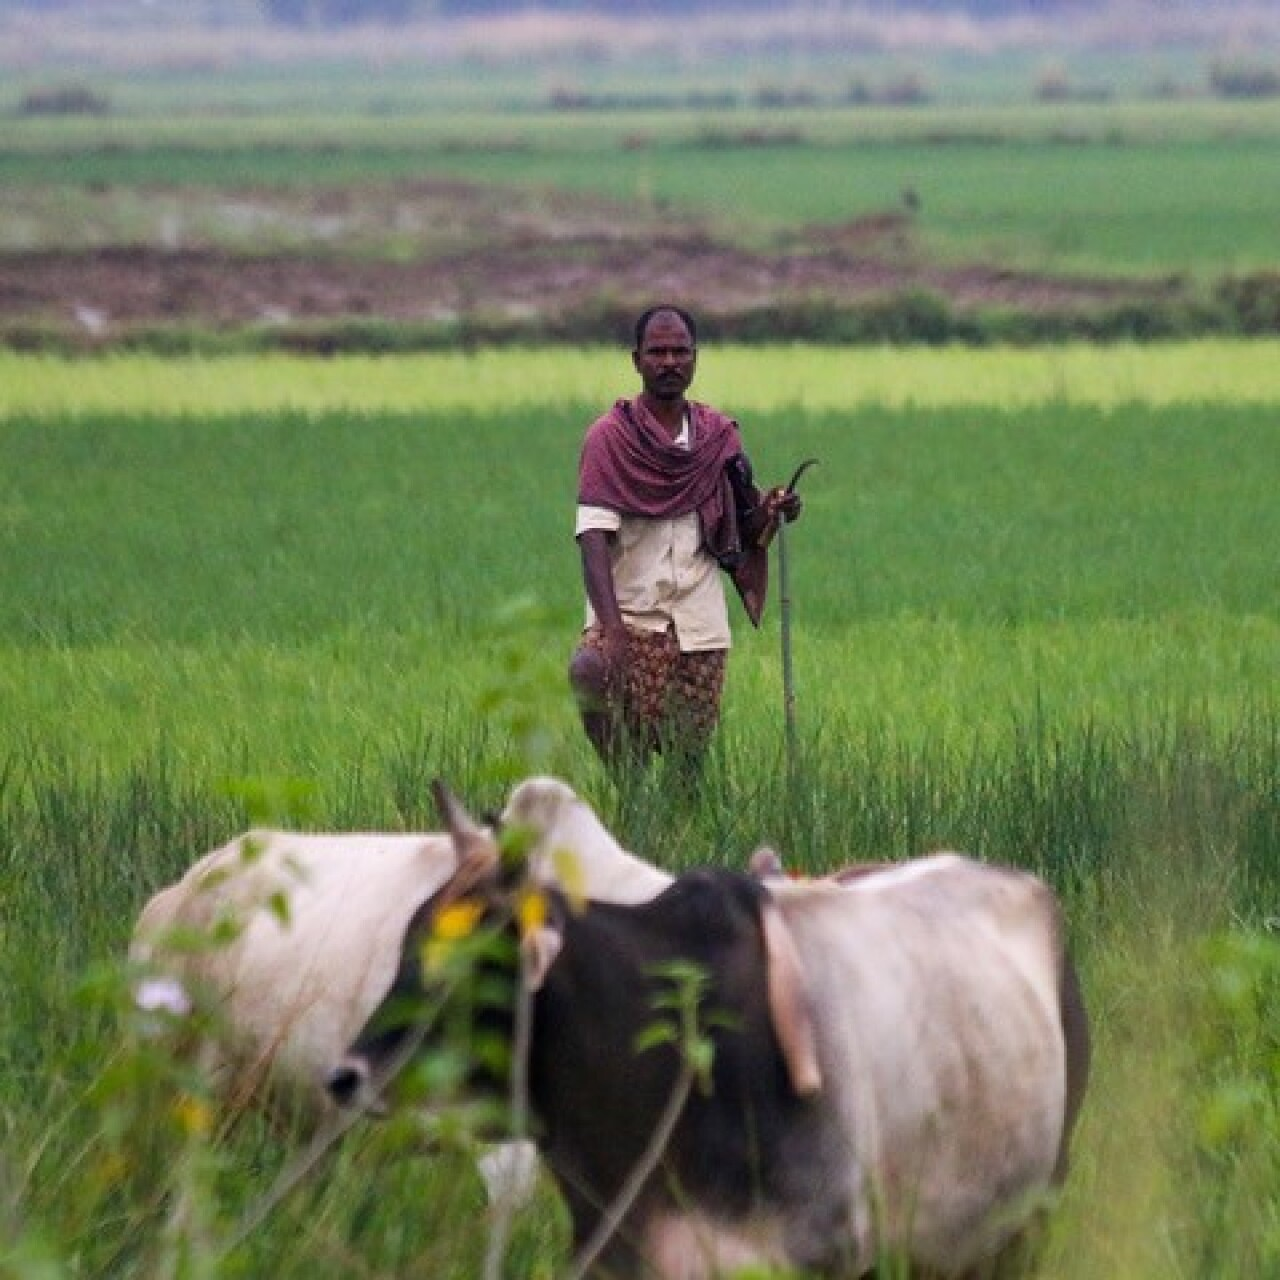 A man standing in a field holding a walking stick with grass up to his waist. Two cows in the foreground are grazing. The background is all grass fields and farmland.